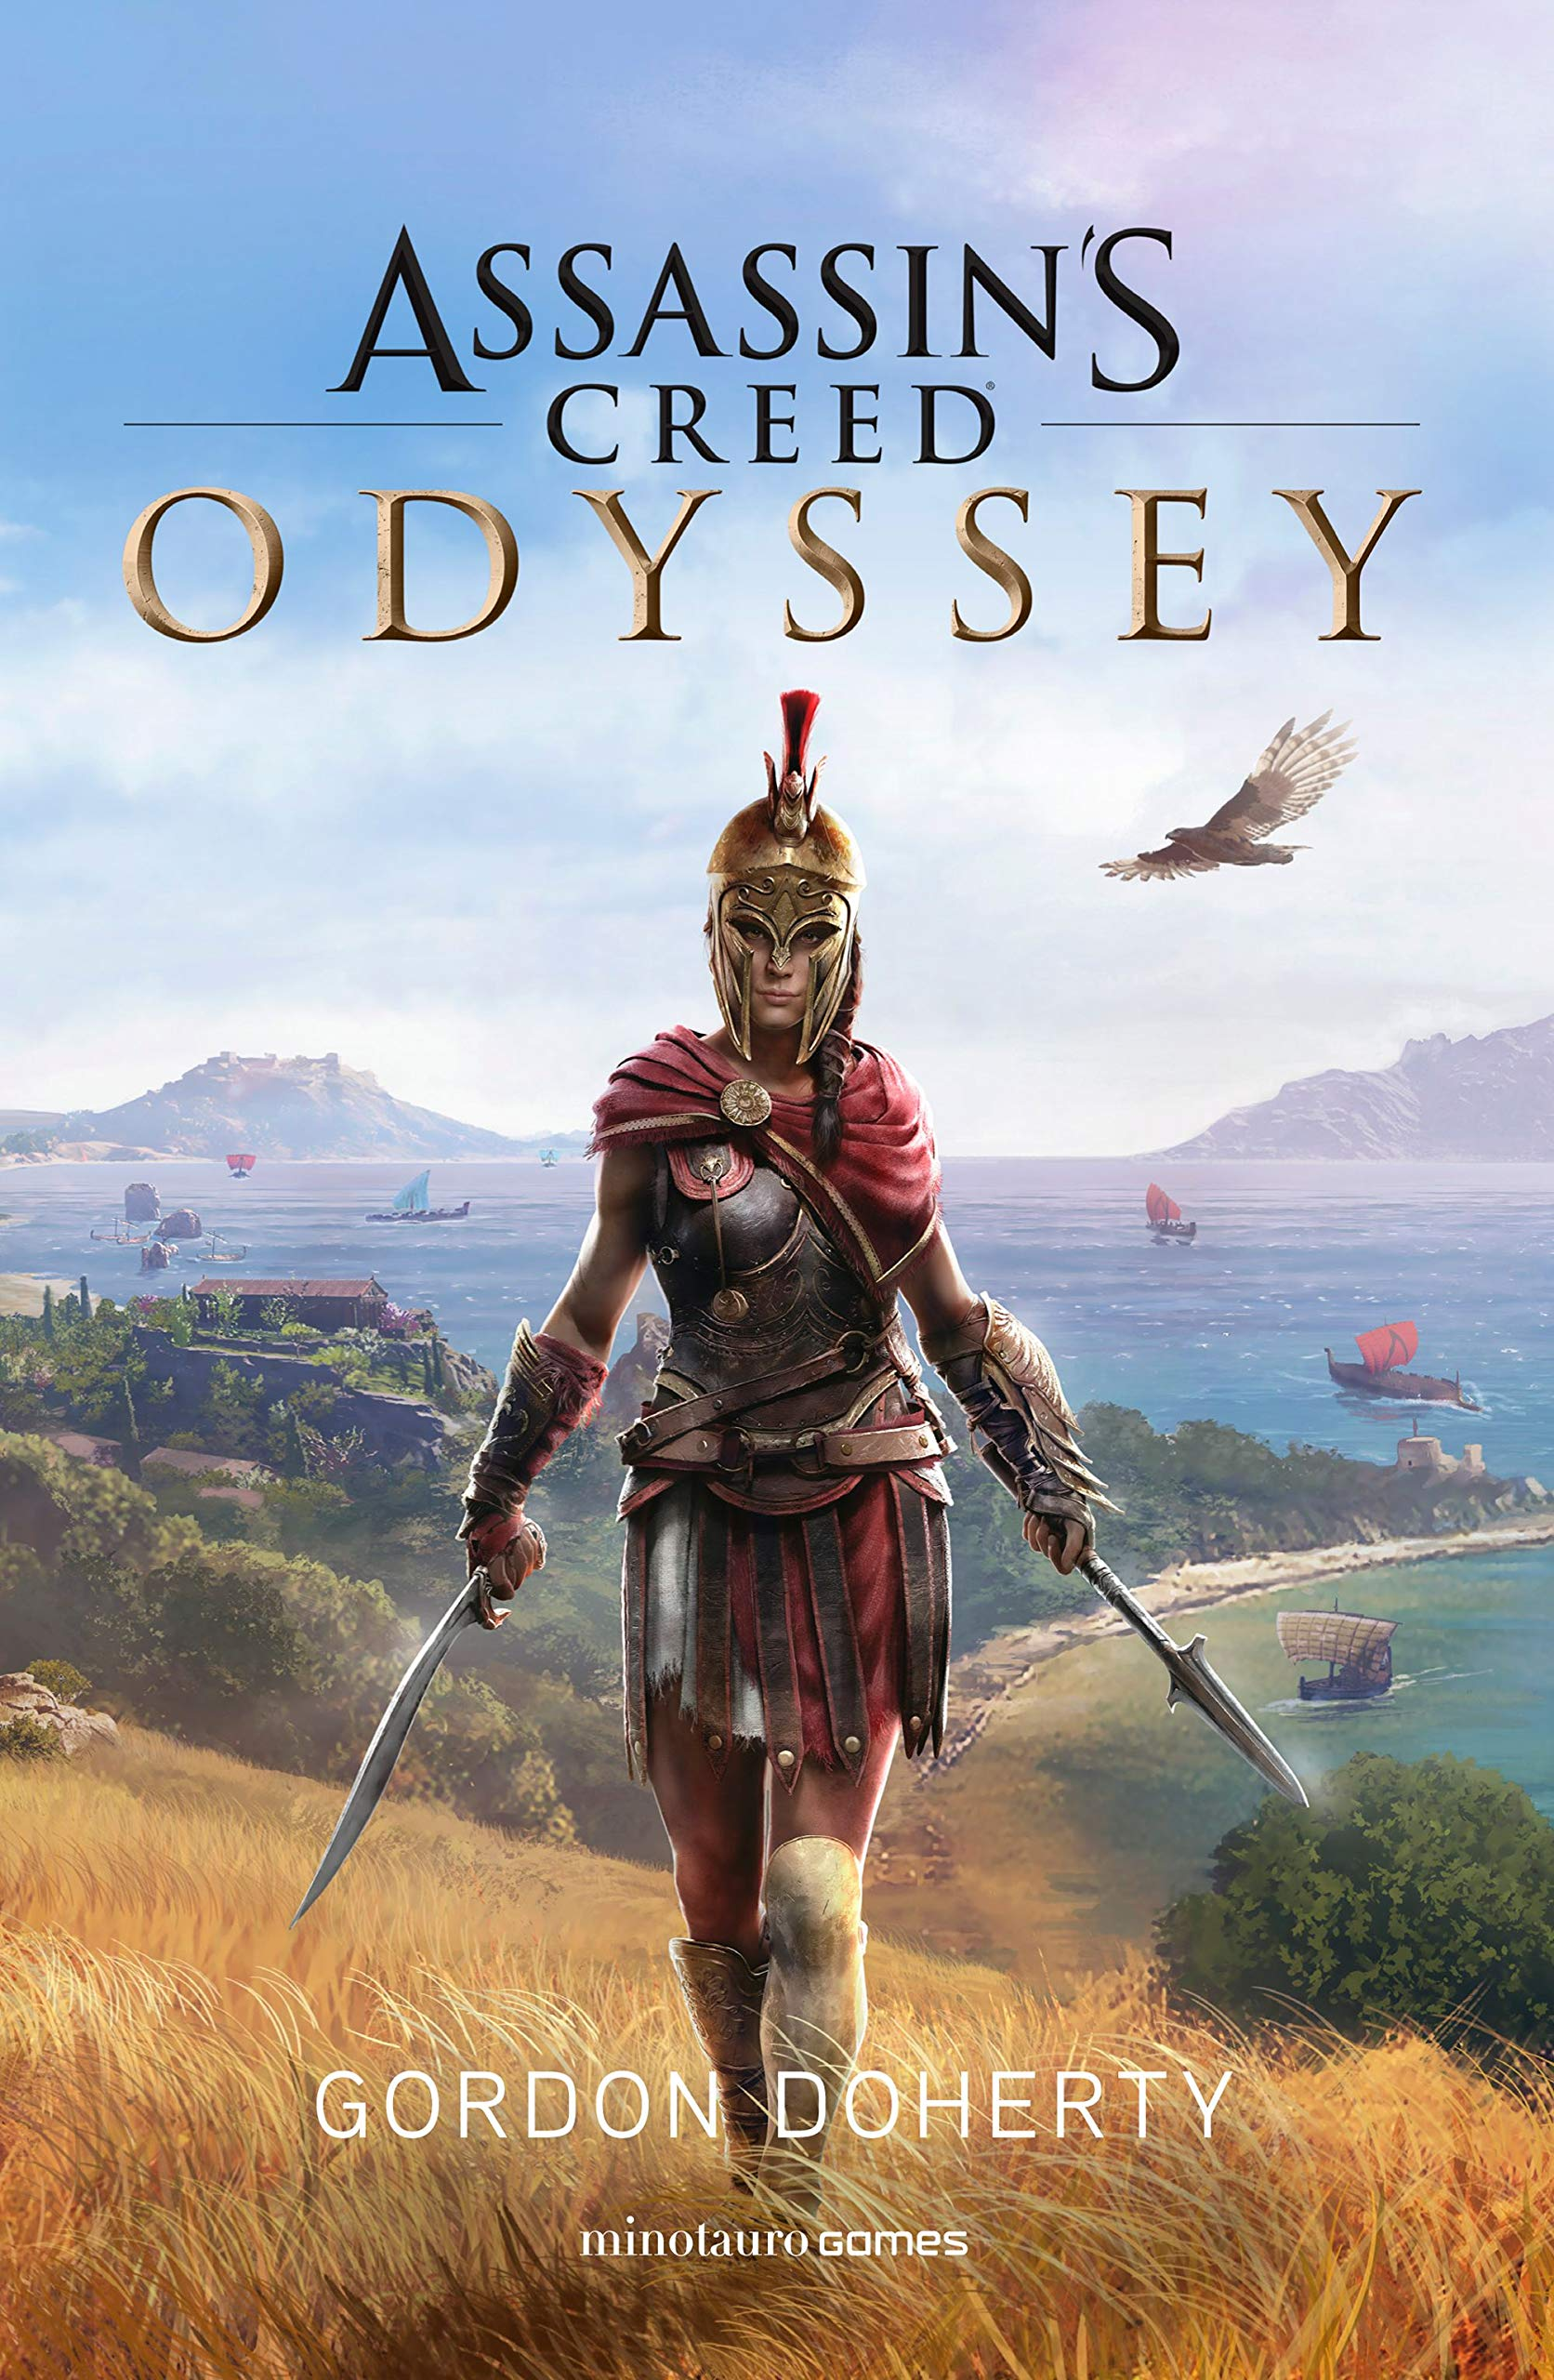 Assassin's Creed Odyssey (Minotauro Games) Tapa blanda – 30 oct 2018 Diversos Autores 8445005979 Science fiction